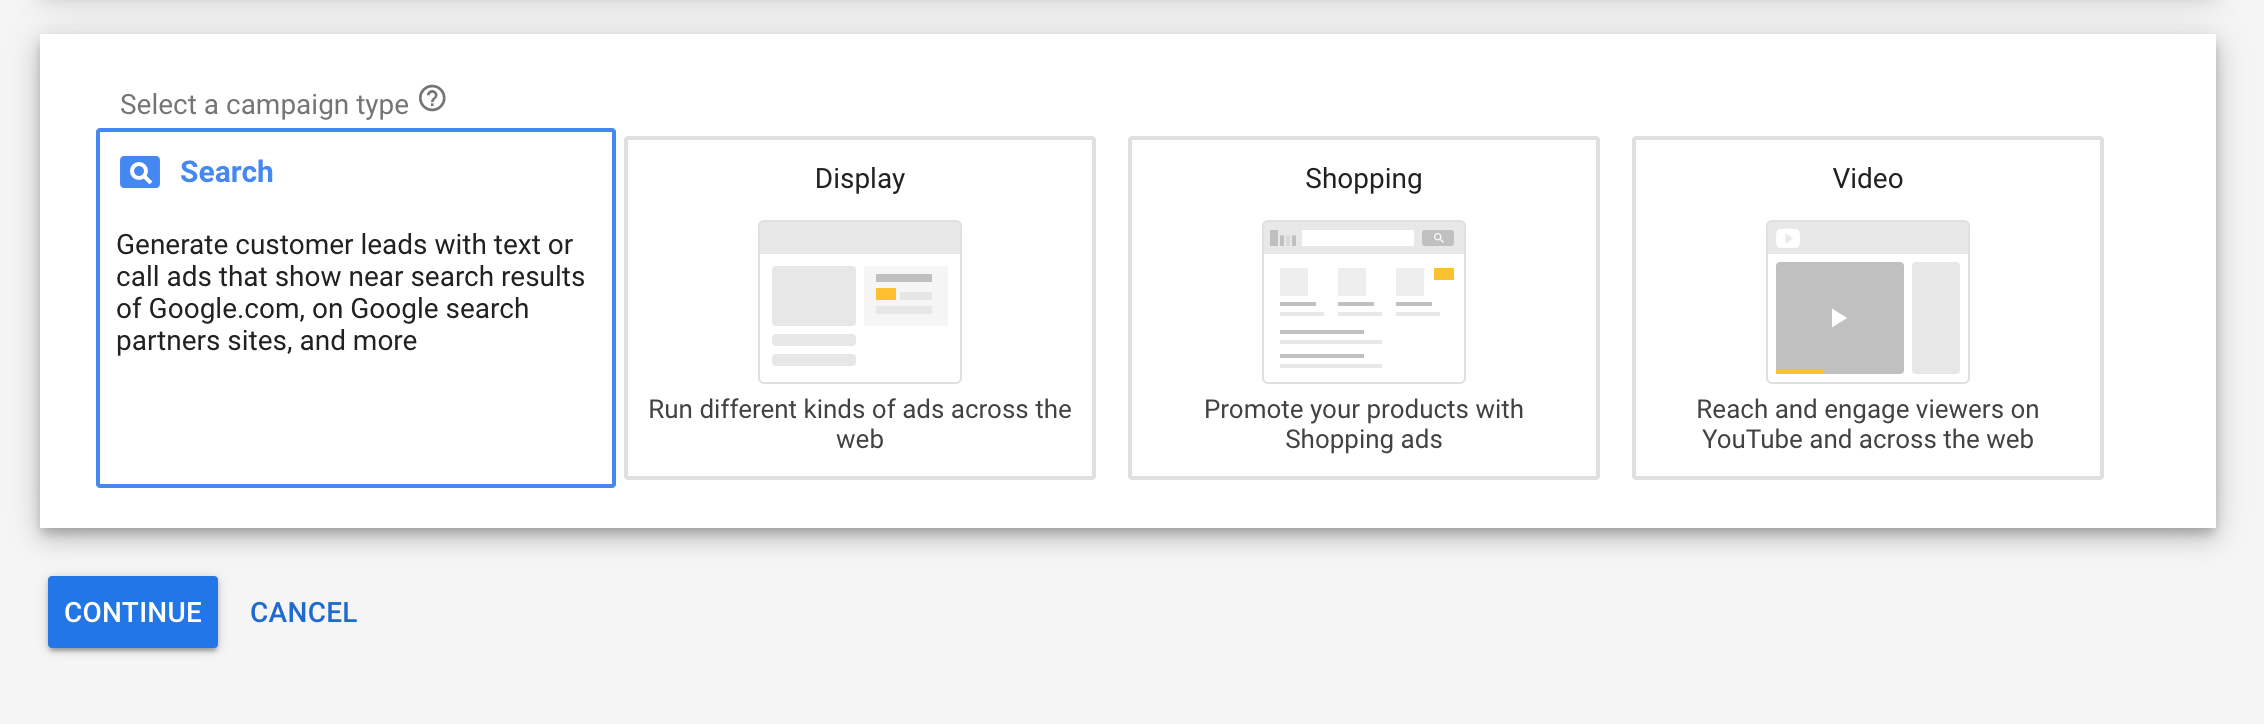 Google Form ads set up - Search.png